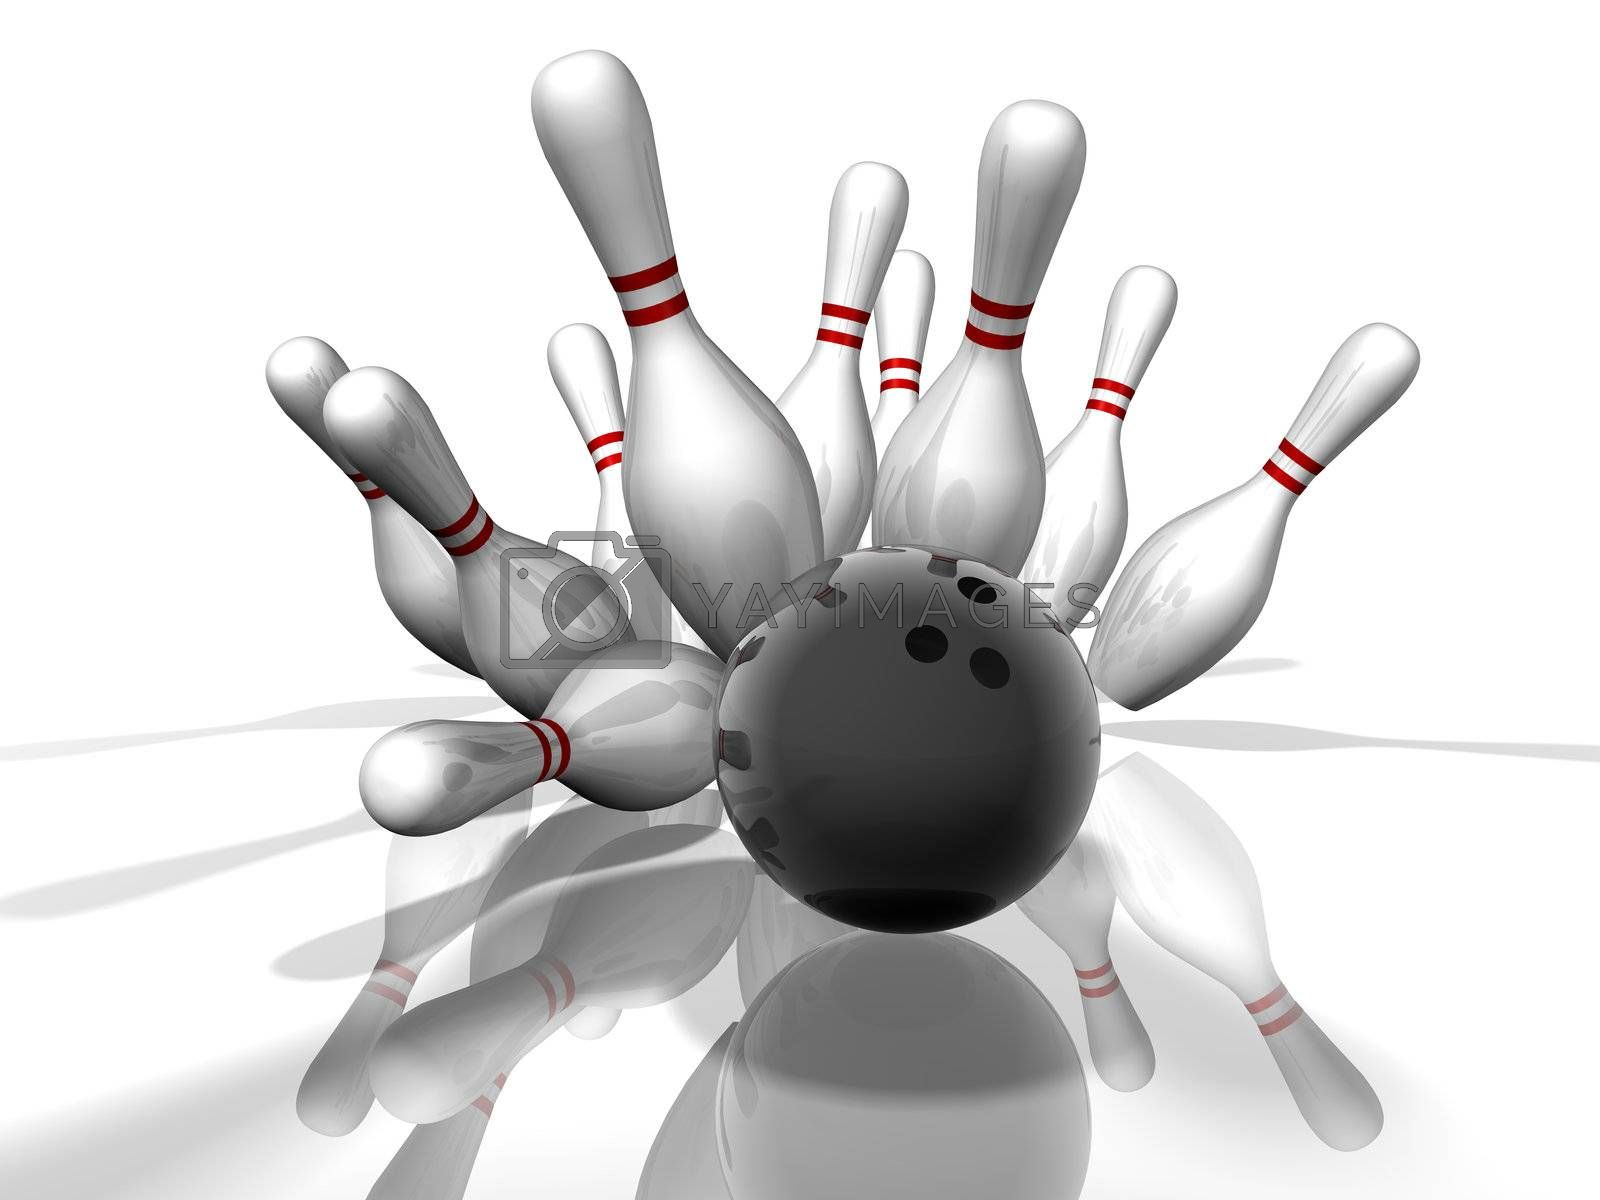 3D render of a bowling strike with shadows and reflection.